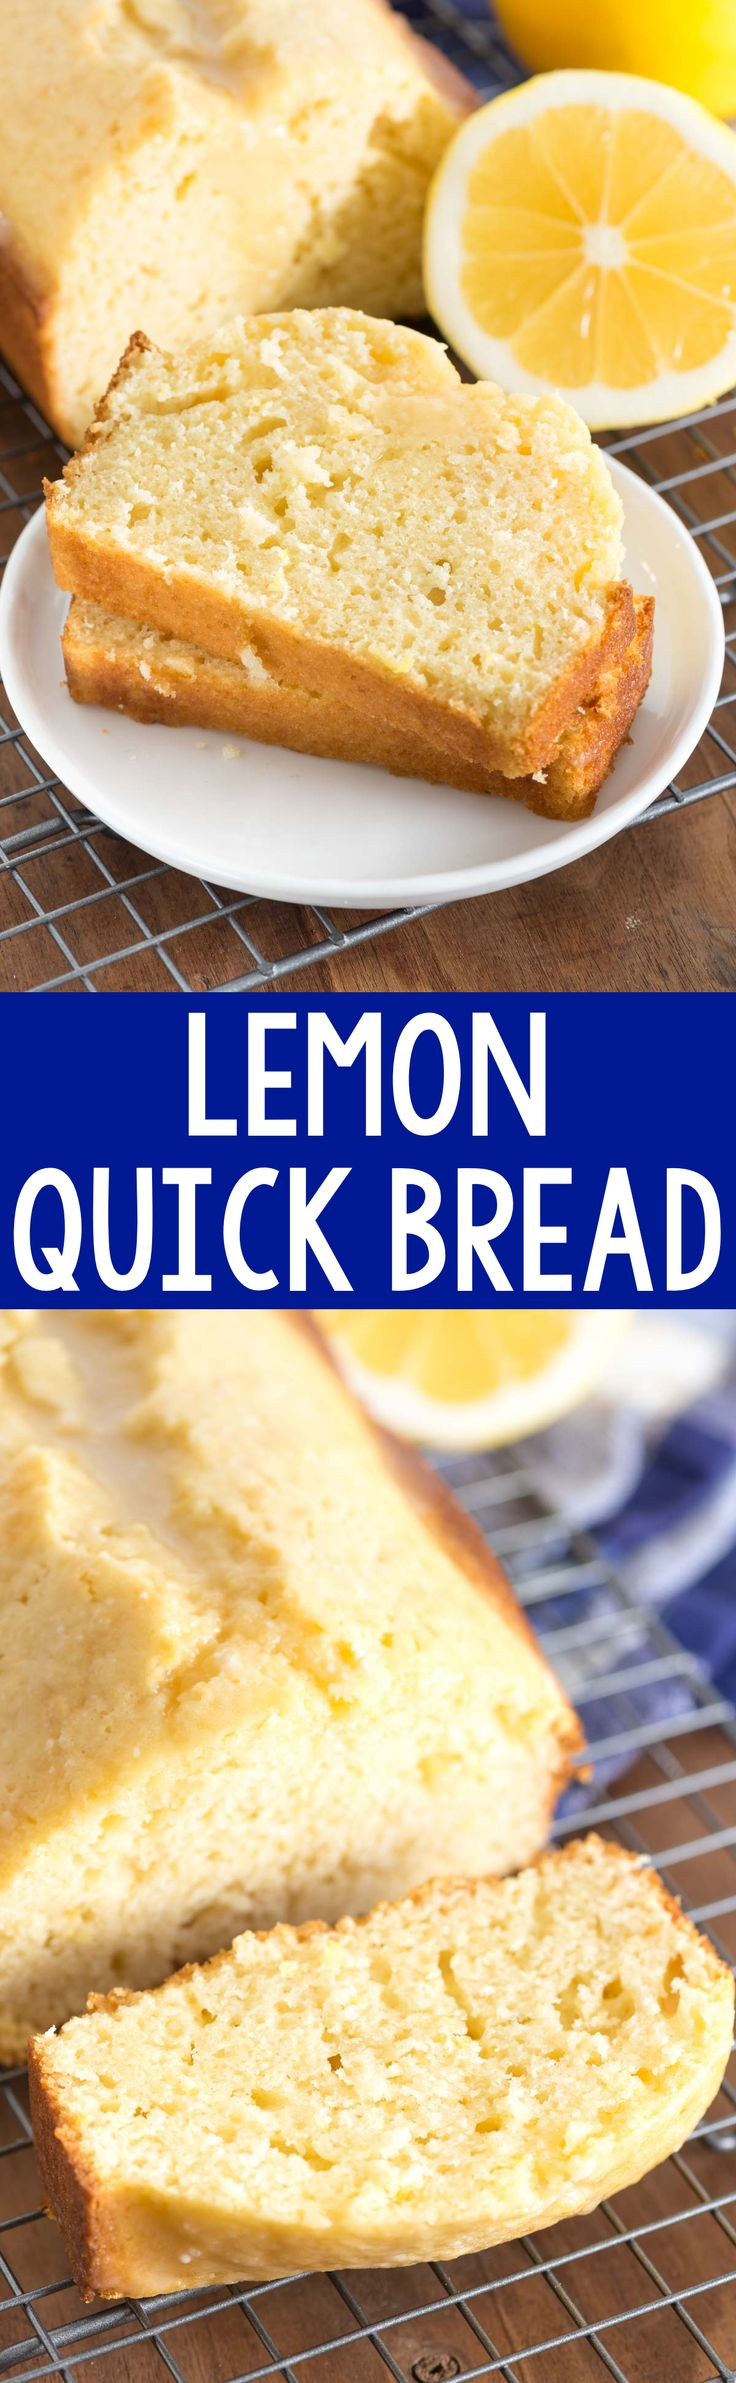 Lemon Quick Bread - this easy quick bread recipe is bursting with lemon flavor. It's great for dessert or breakfast - with or without a lemon glaze!